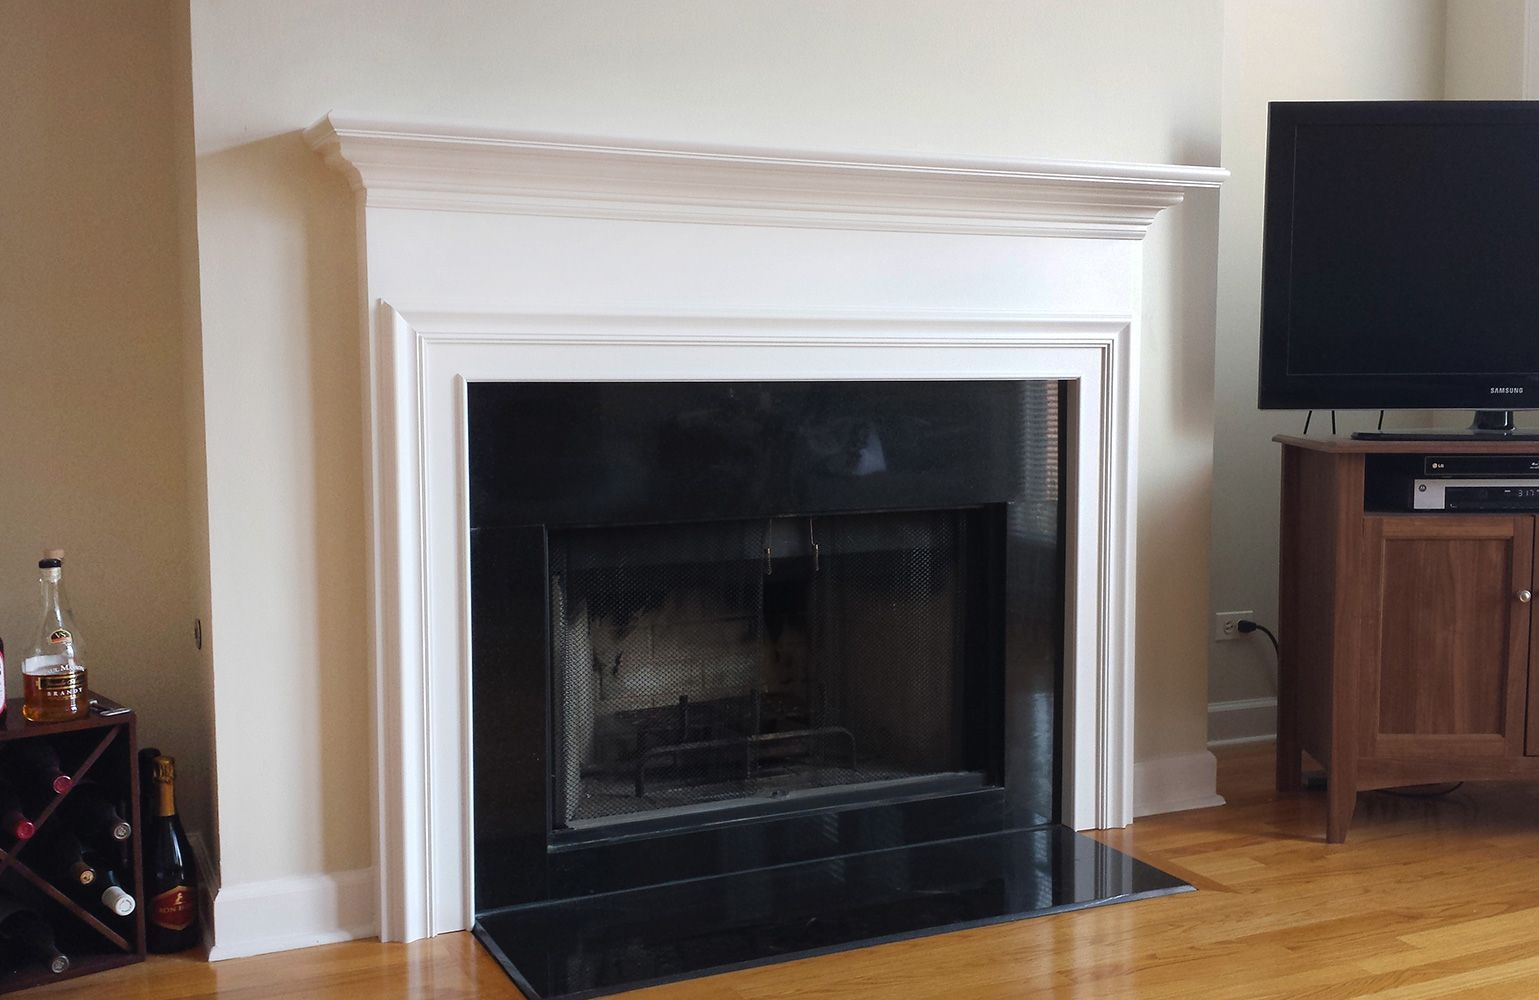 Custom made columbus wood fireplace mantel by accolade fireplace custom made columbus wood fireplace mantel teraionfo